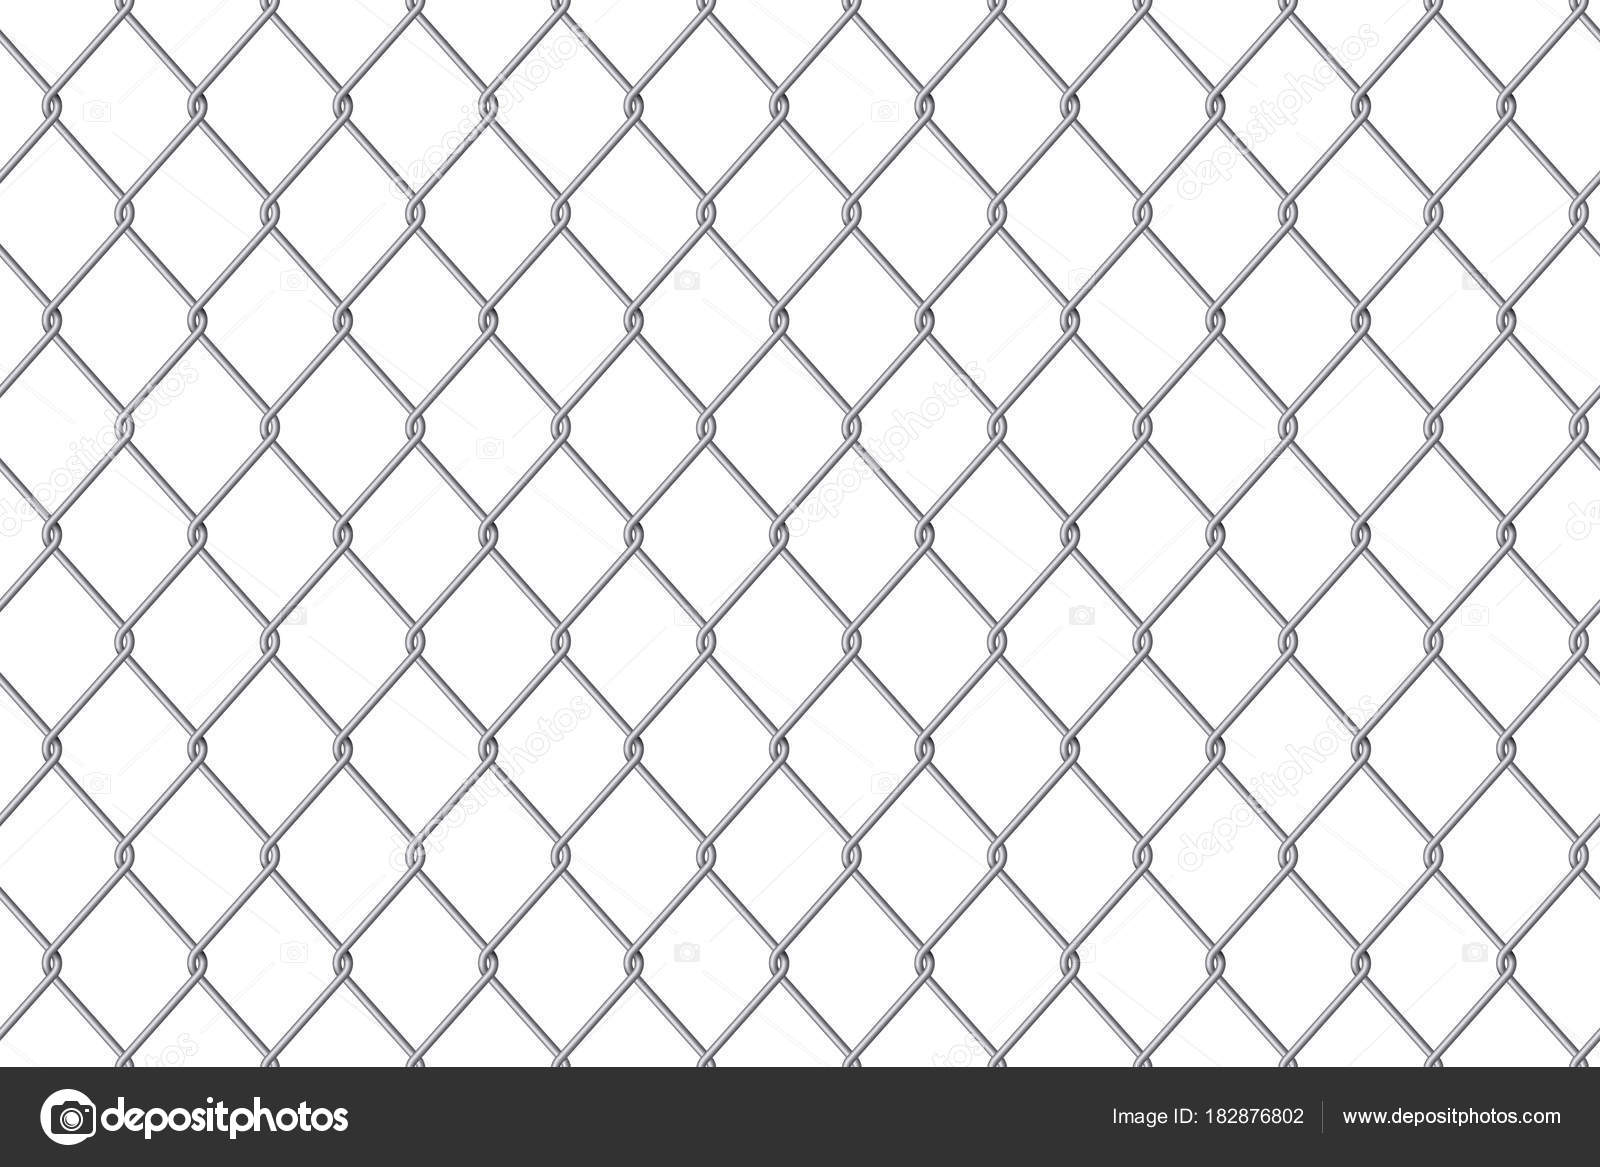 Creative vector illustration of chain link fence wire mesh steel ...